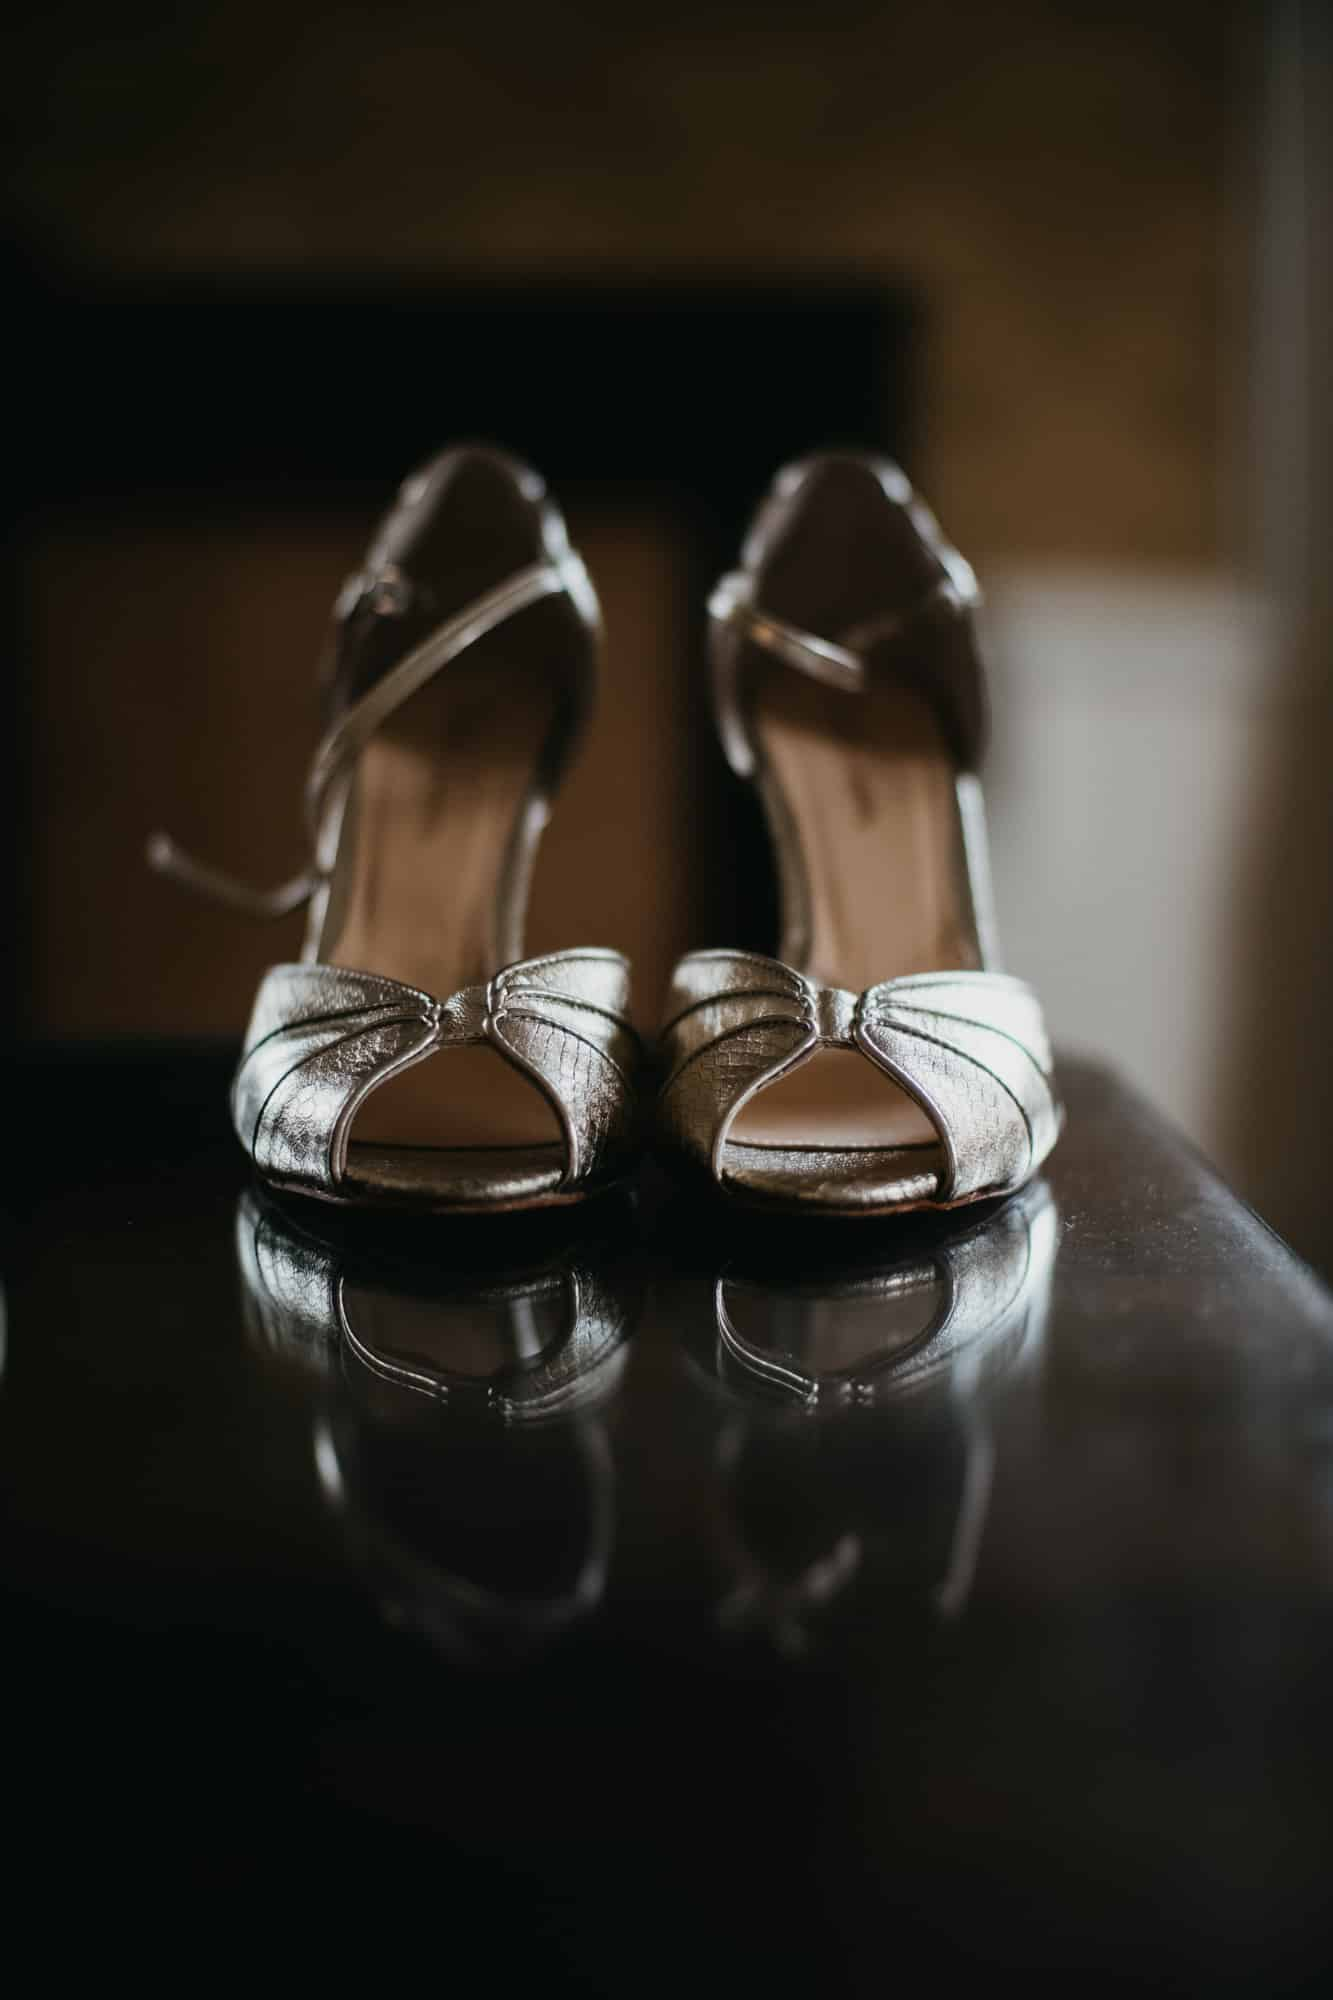 Detail shot of the bride's shoes